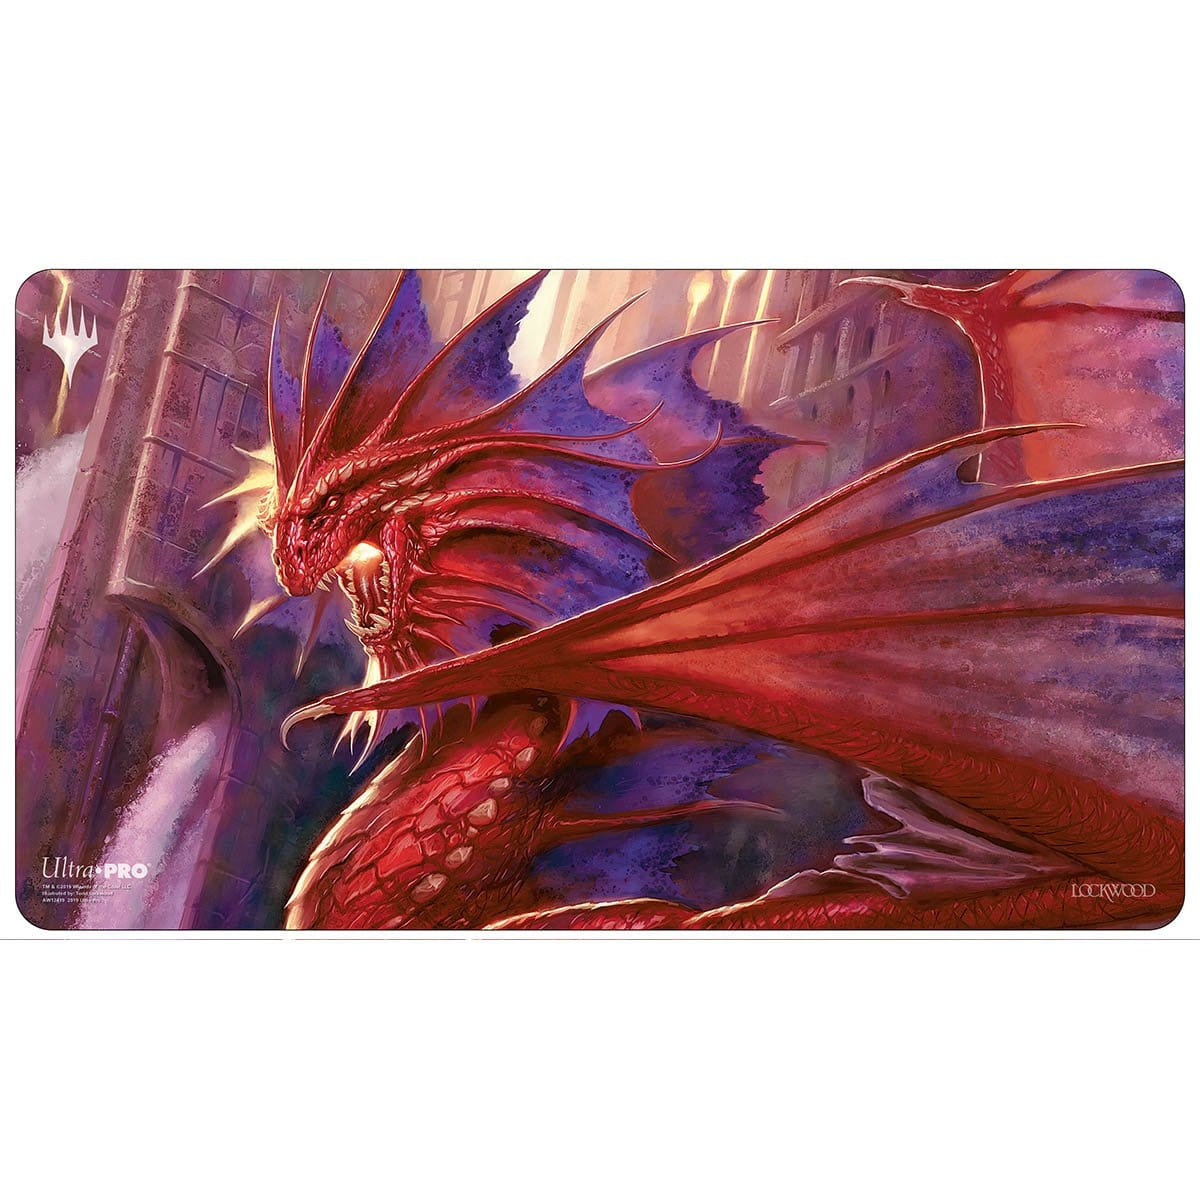 Niv-Mizzet, the Firemind Playmat - Playmat - Original Magic Art - Accessories for Magic the Gathering and other card games